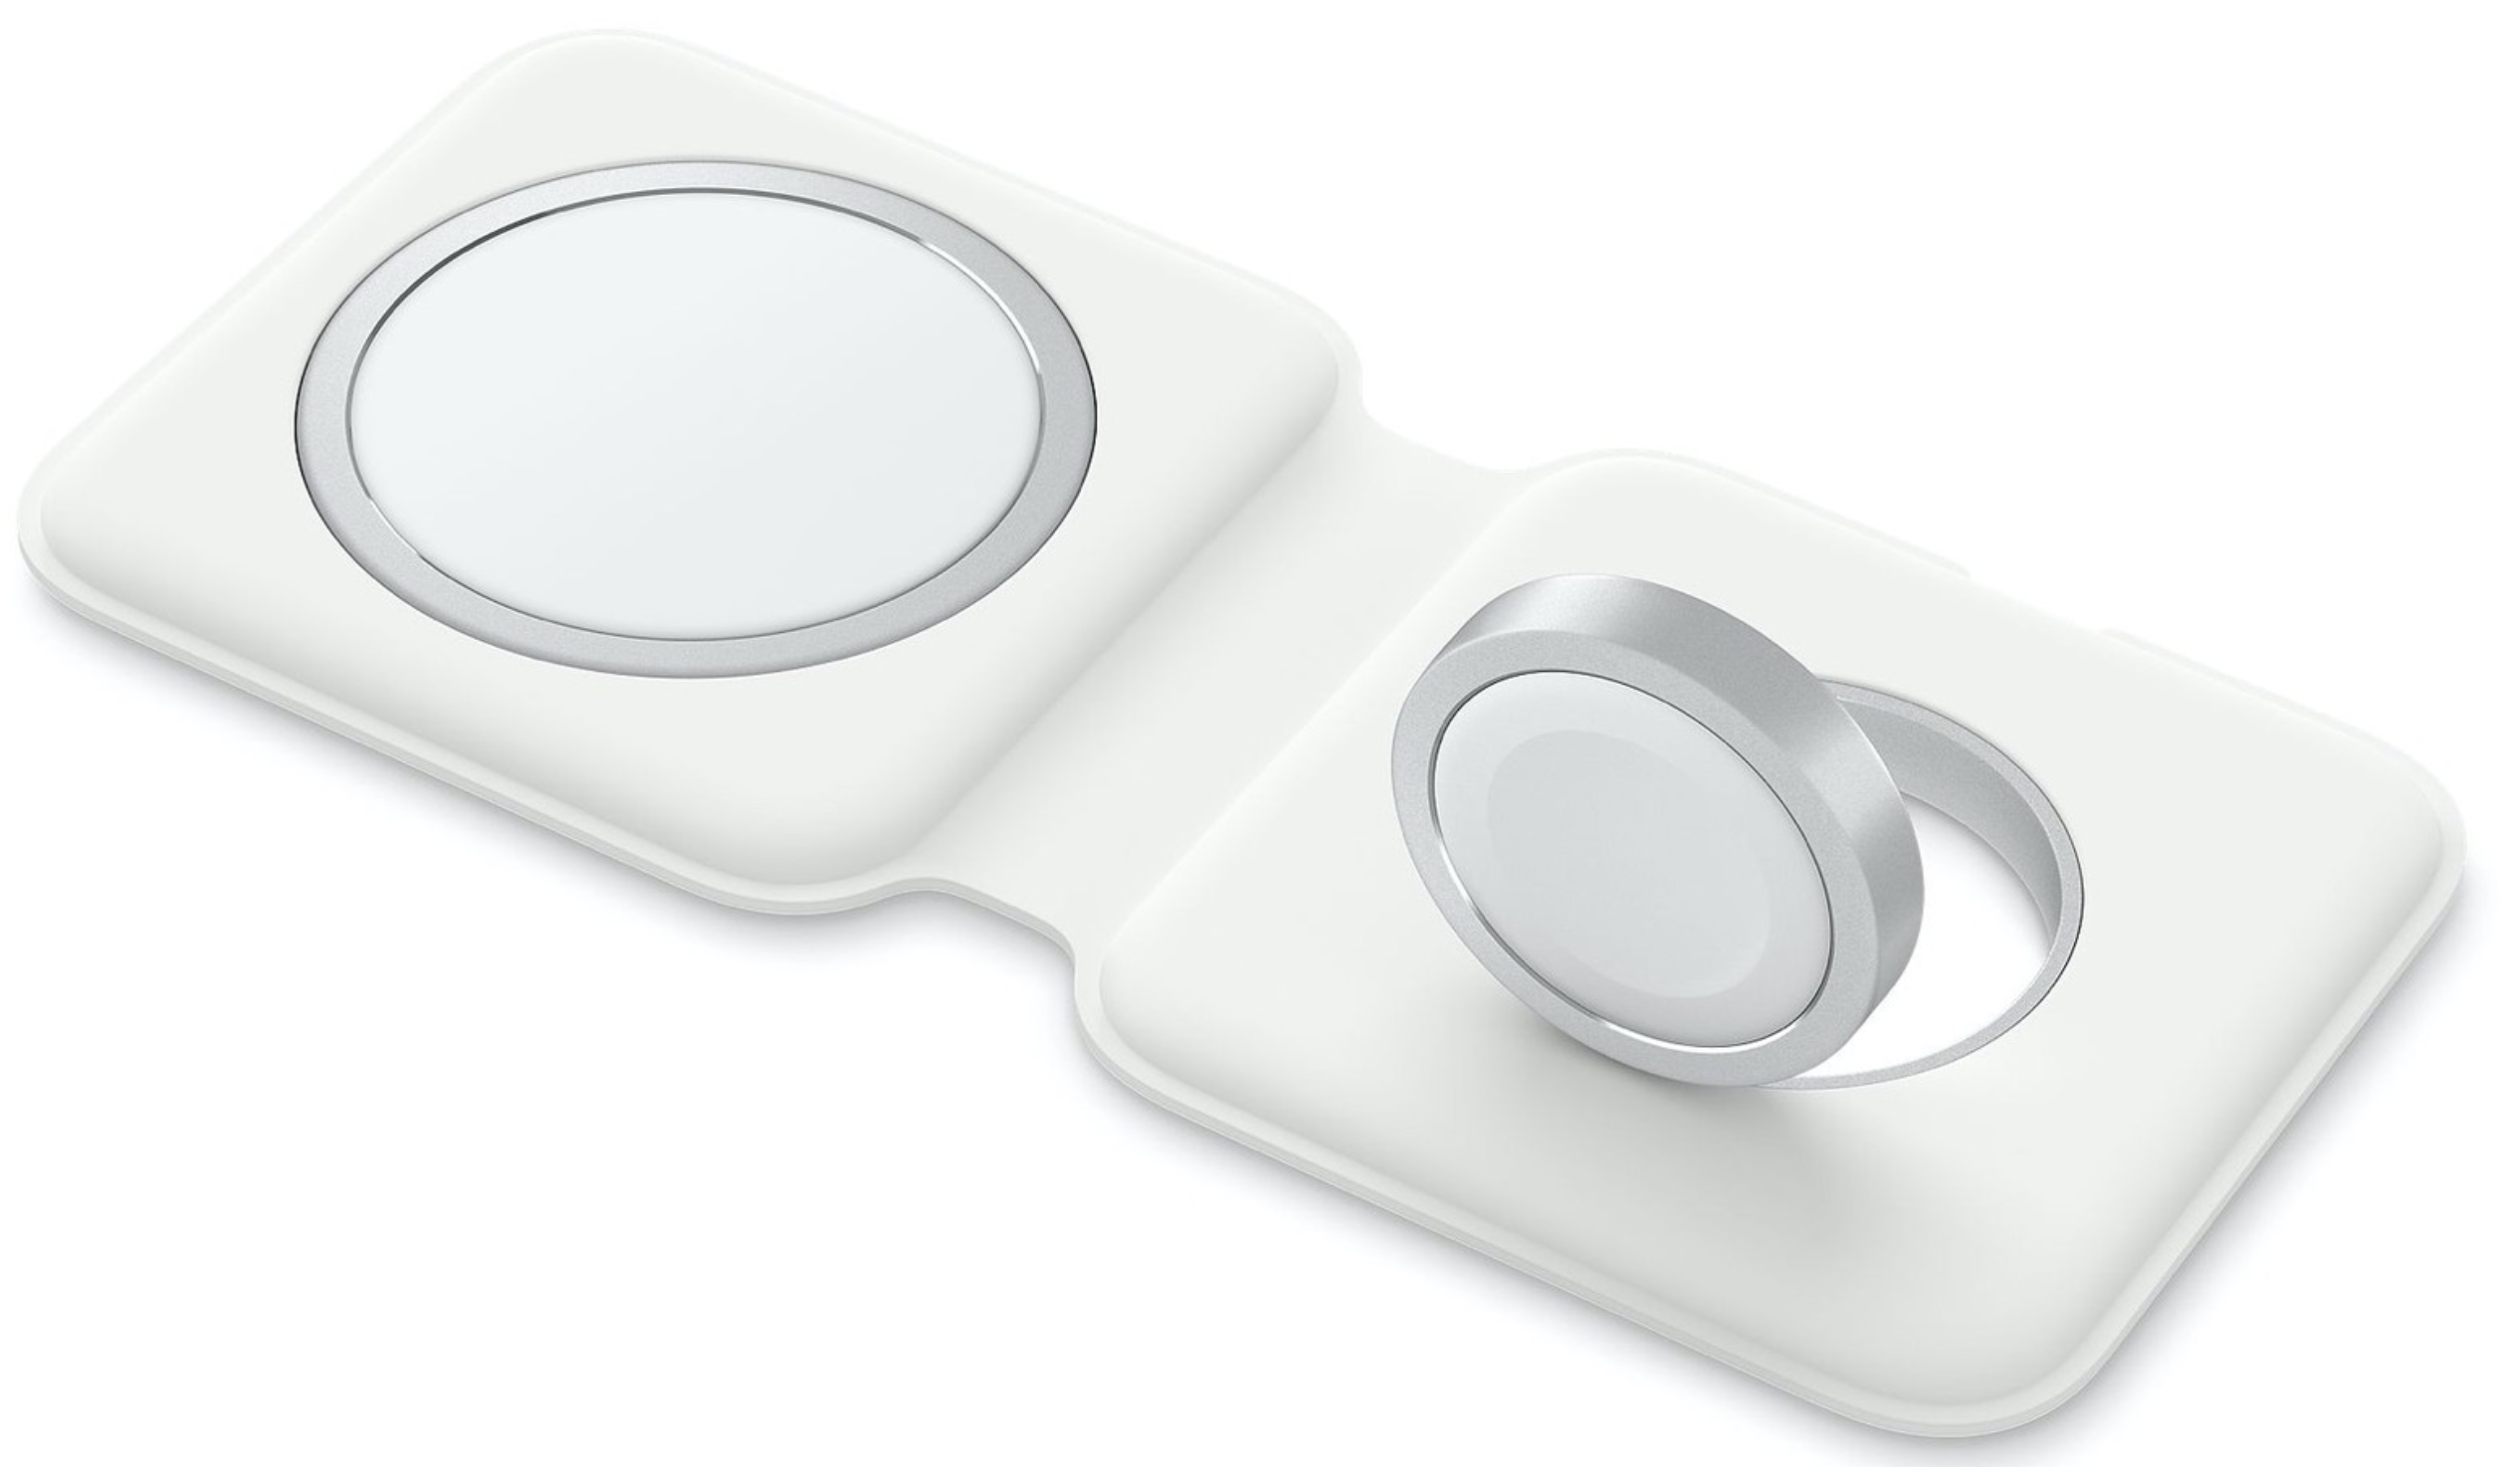 MagSafe Duo Wireless Charger gets FCC certification